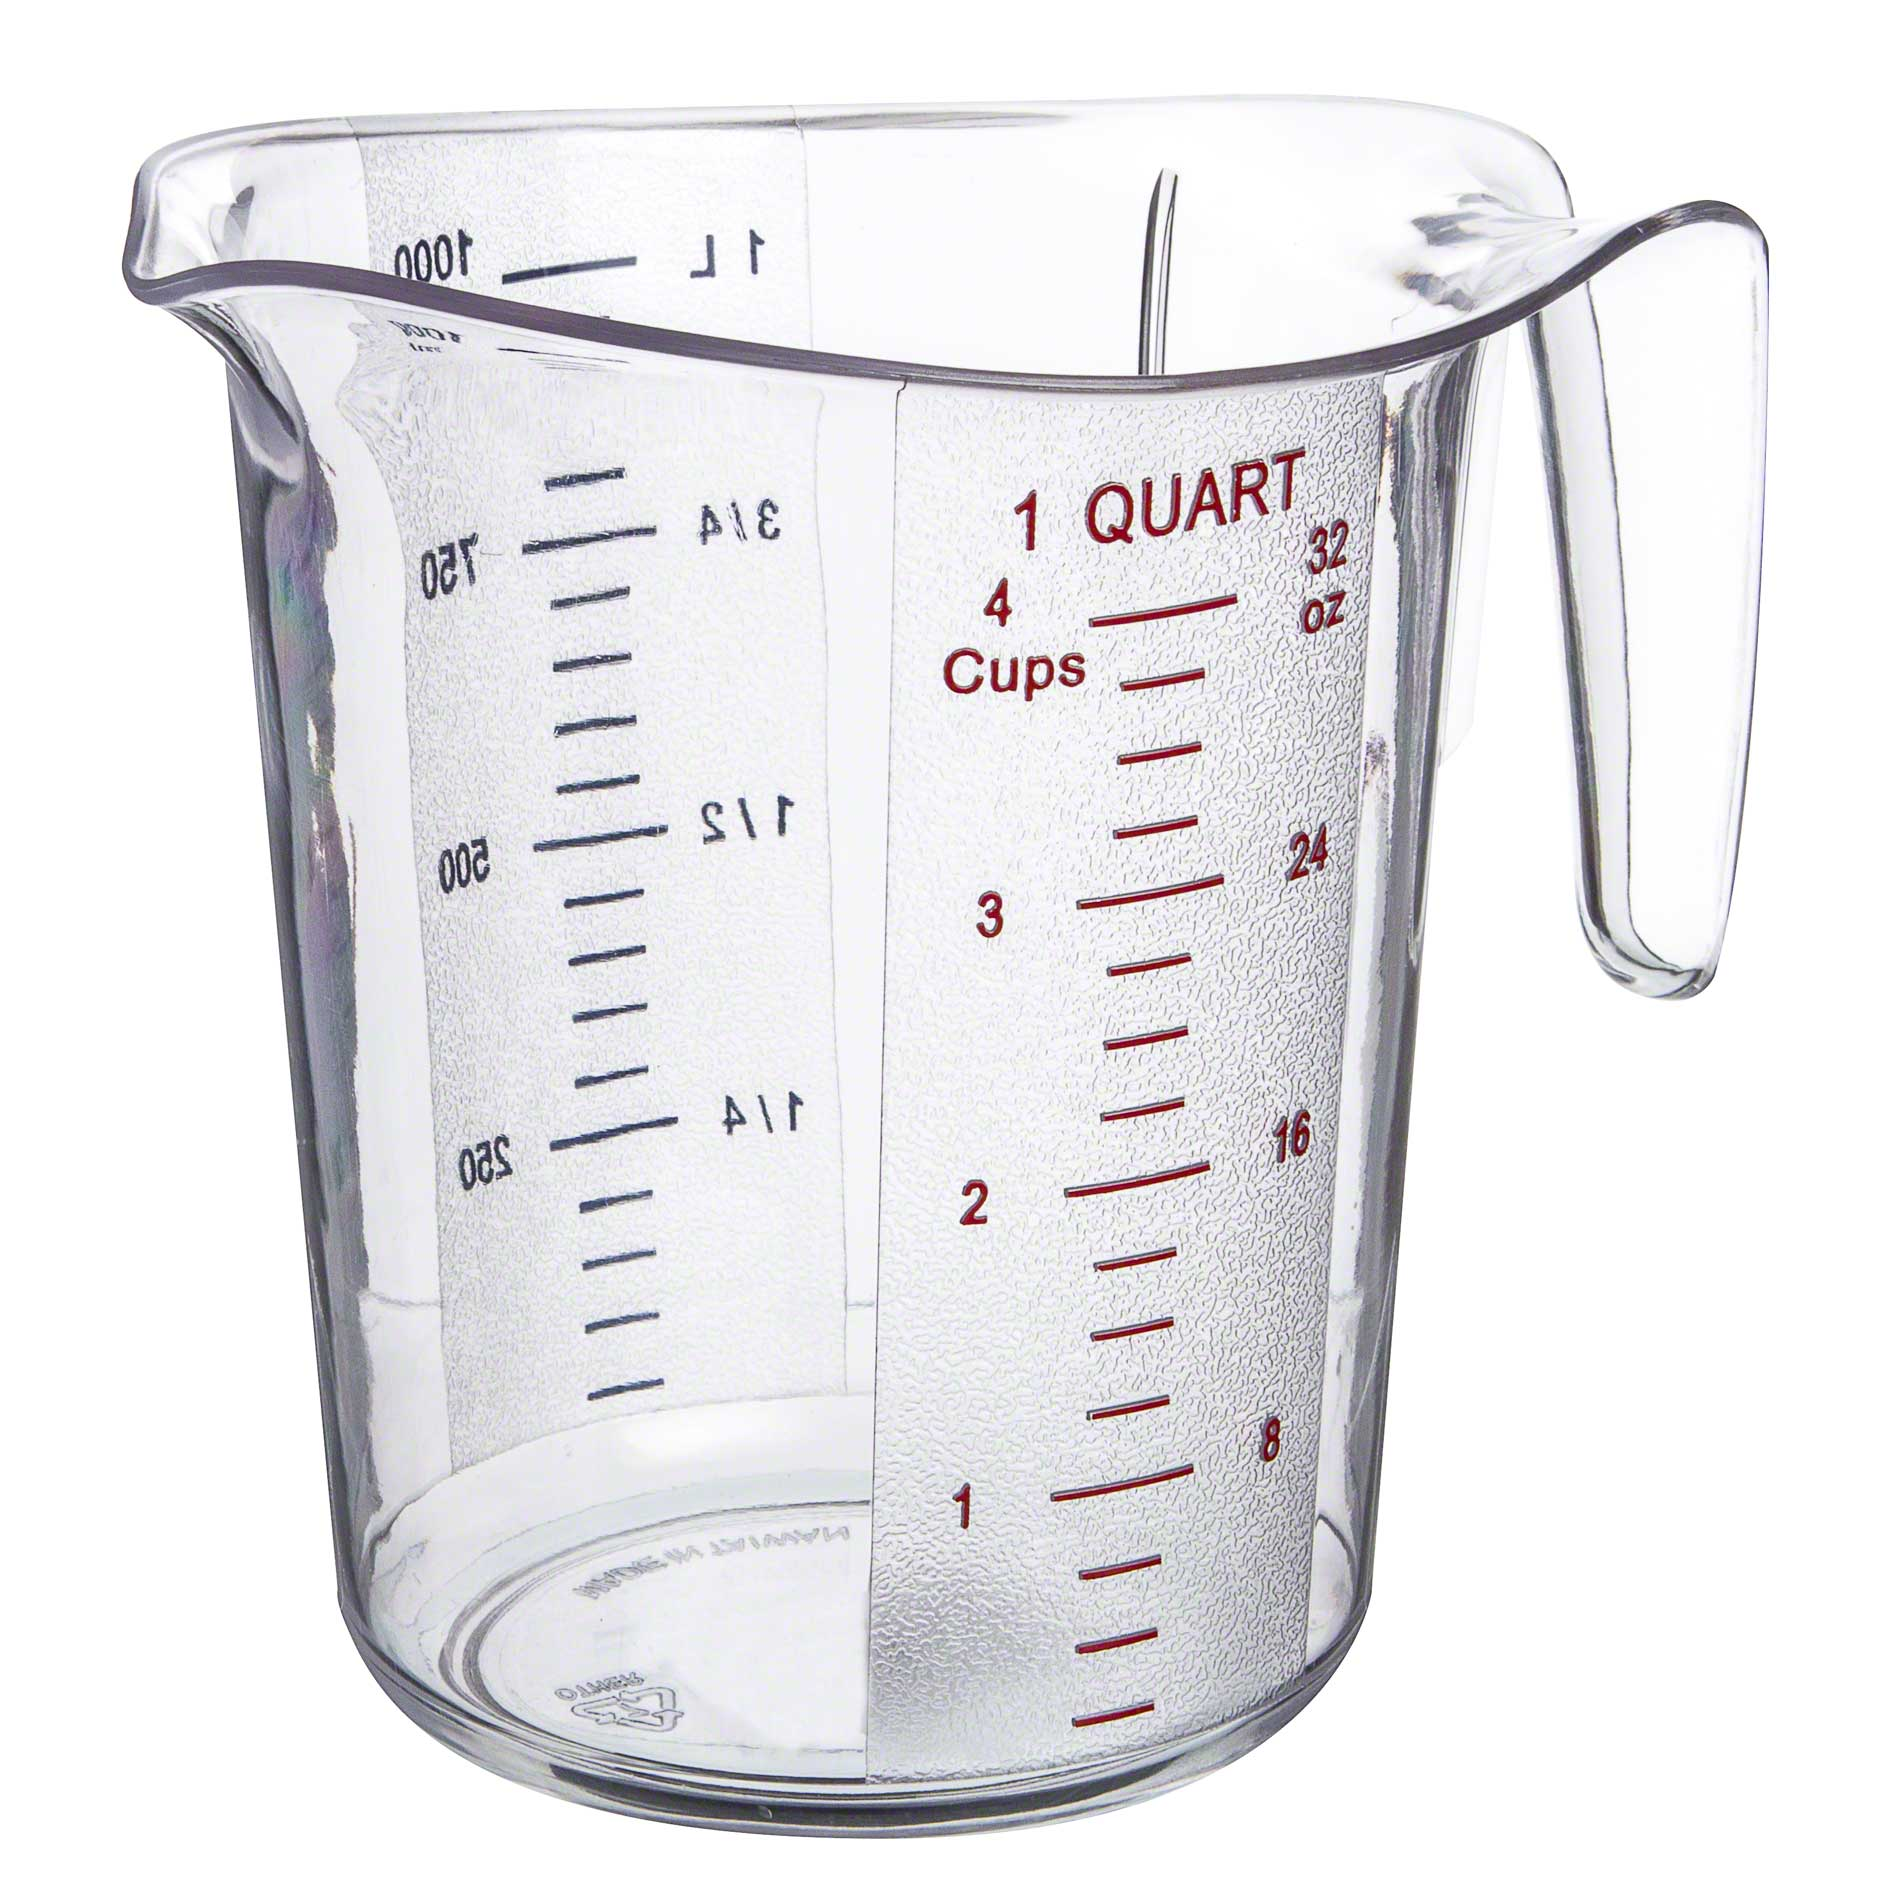 Worksheet 16 Cups Quarts how many ounces are in a quart answers hunt qa quart